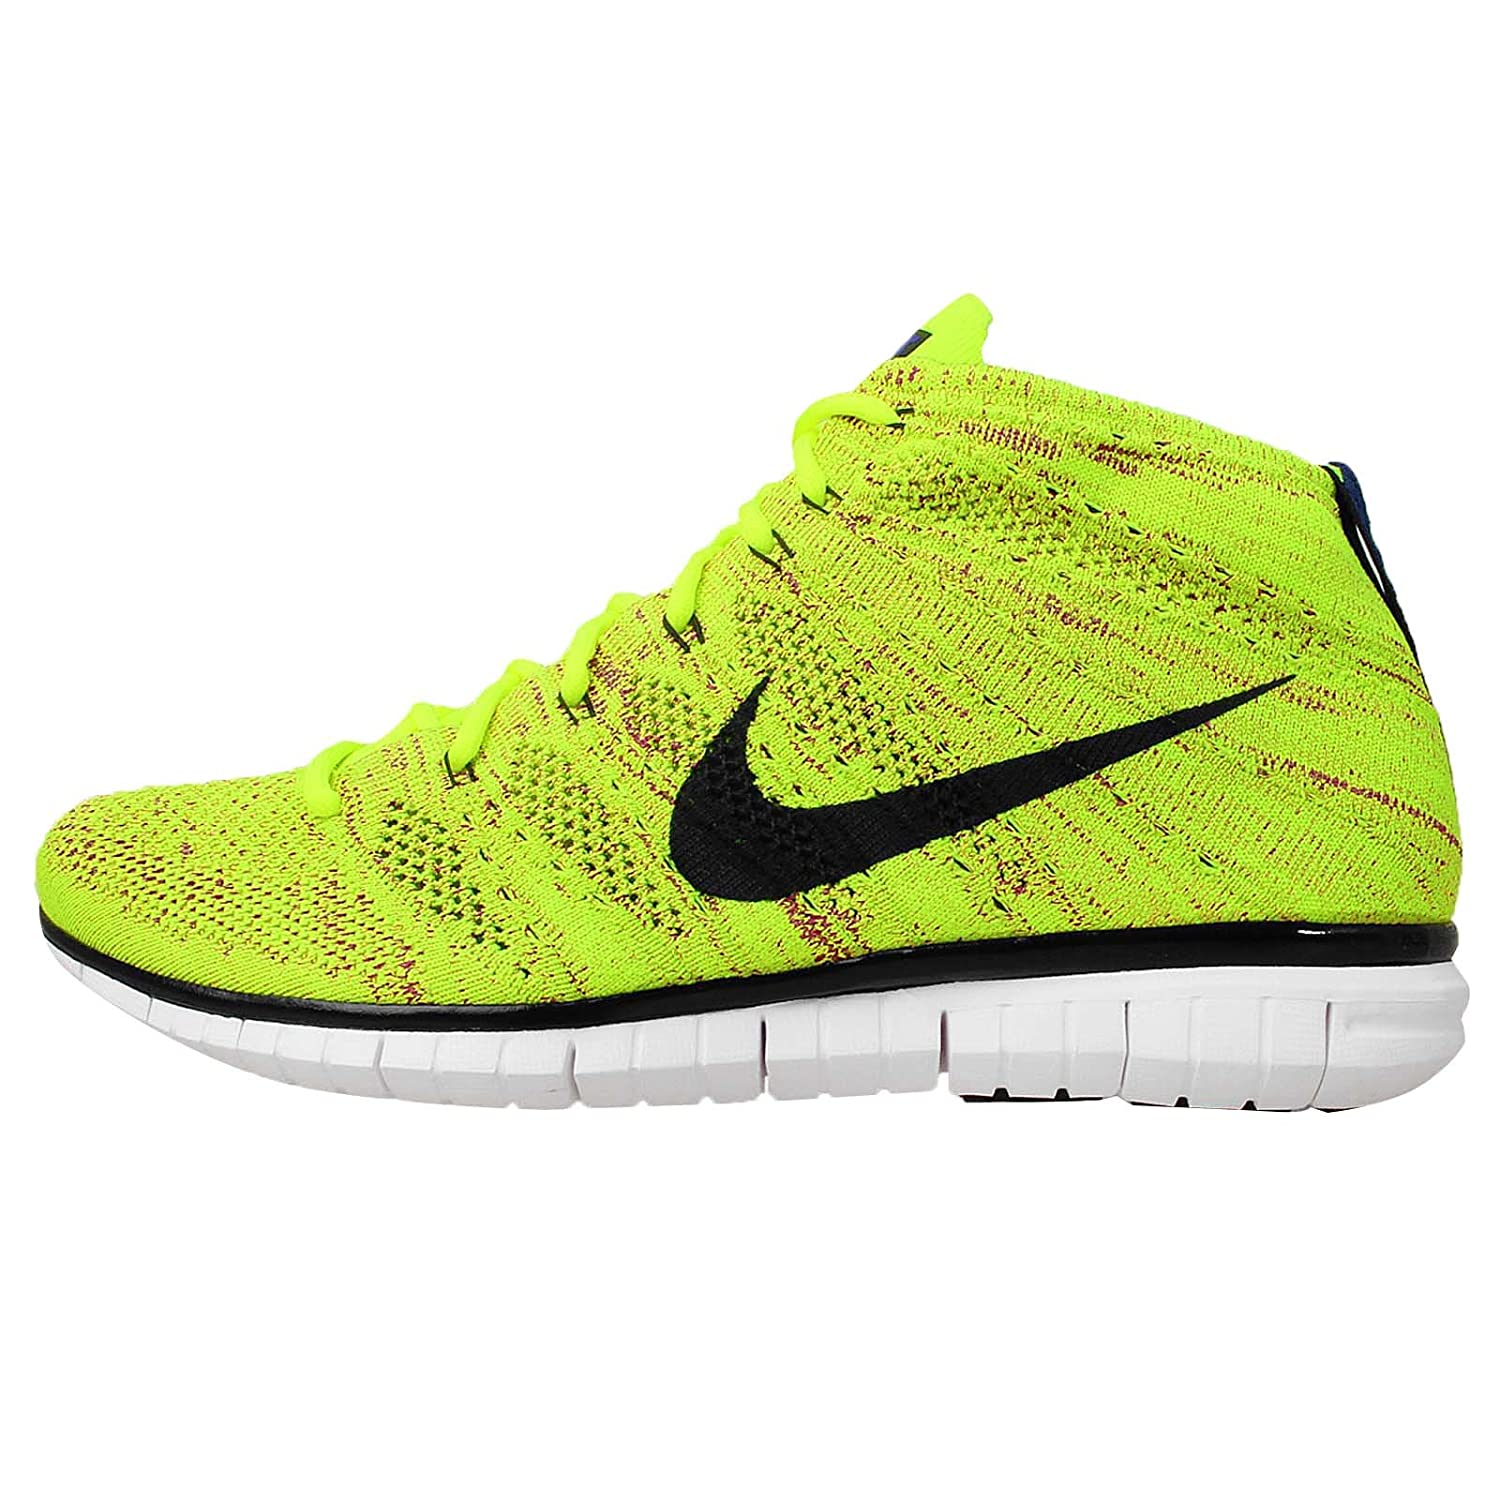 Nike Free Flyknit Chukka Goldternational College of Management